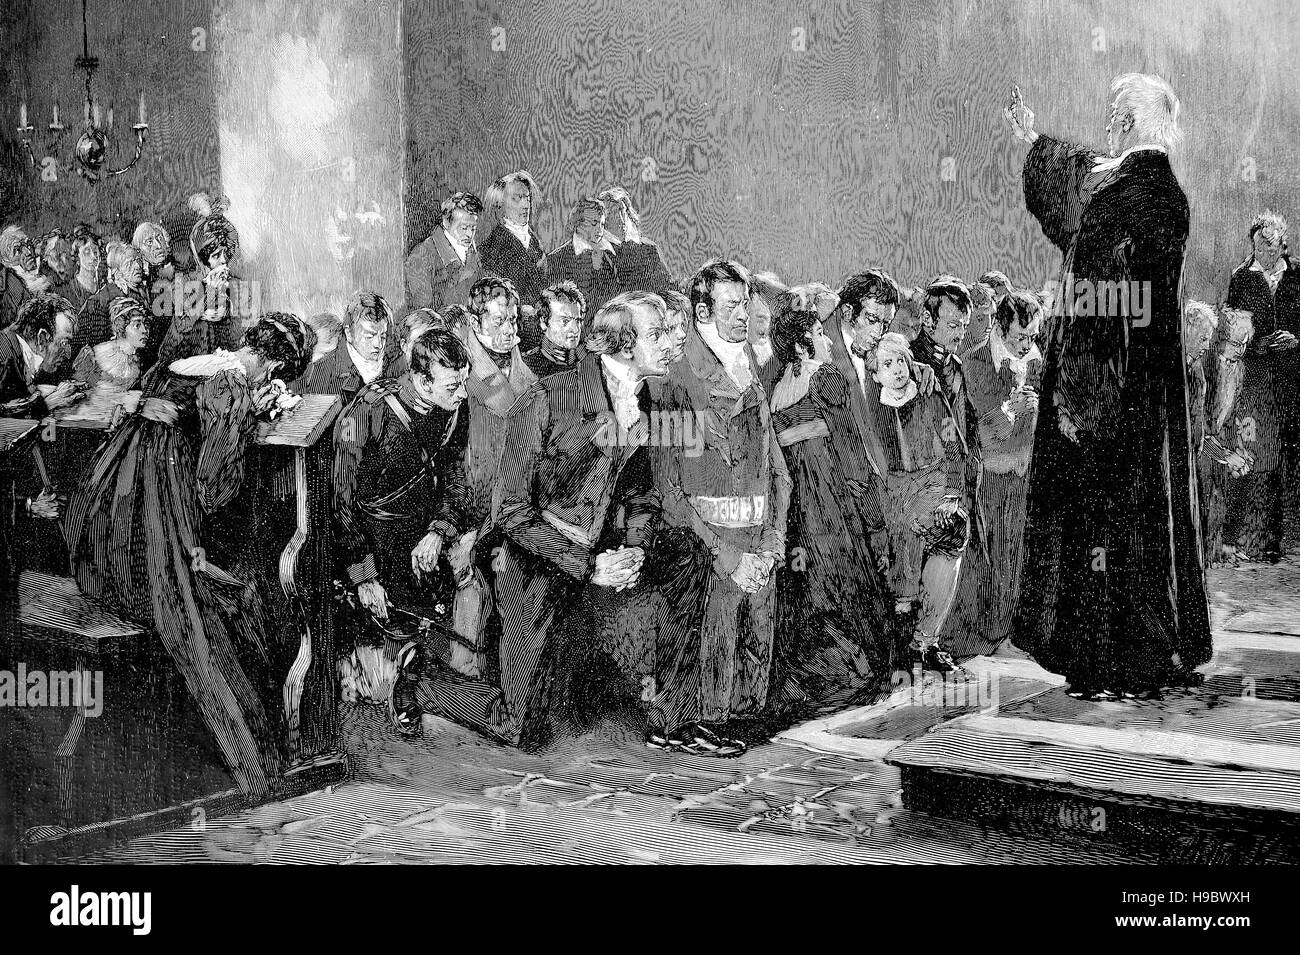 Blessing of War Volunteers 1813, Napoleonic Wars, historical illustration - Stock Image